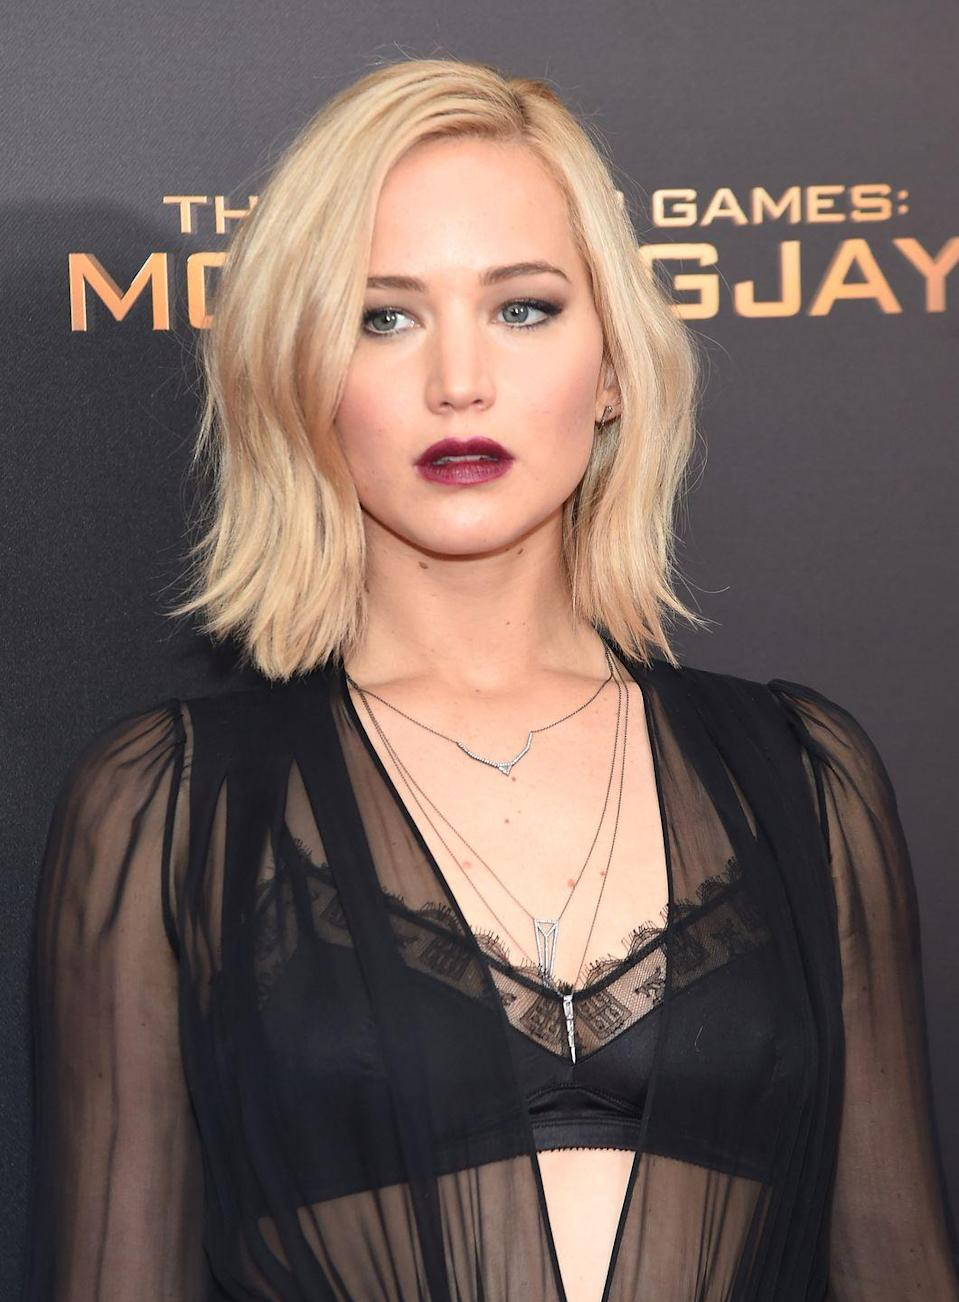 """<p>Lawrence's first reaction to seeing the 2017 horror film wasn't the best. Lawrence told <em><a href=""""http://variety.com/2017/scene/vpage/mother-jennifer-lawrence-1202558854/"""" rel=""""nofollow noopener"""" target=""""_blank"""" data-ylk=""""slk:Variety"""" class=""""link rapid-noclick-resp"""">Variety</a></em>, """"I was really shaken. My first reaction [to seeing the film] was that we took it too far,"""" said Lawrence. """"But then after the images died down a little bit, [the movie's] exactly what we're supposed to be doing and what we need to be doing. We have a message and if we watered it down to make people comfortable then what's the point? Why even make it?""""</p>"""